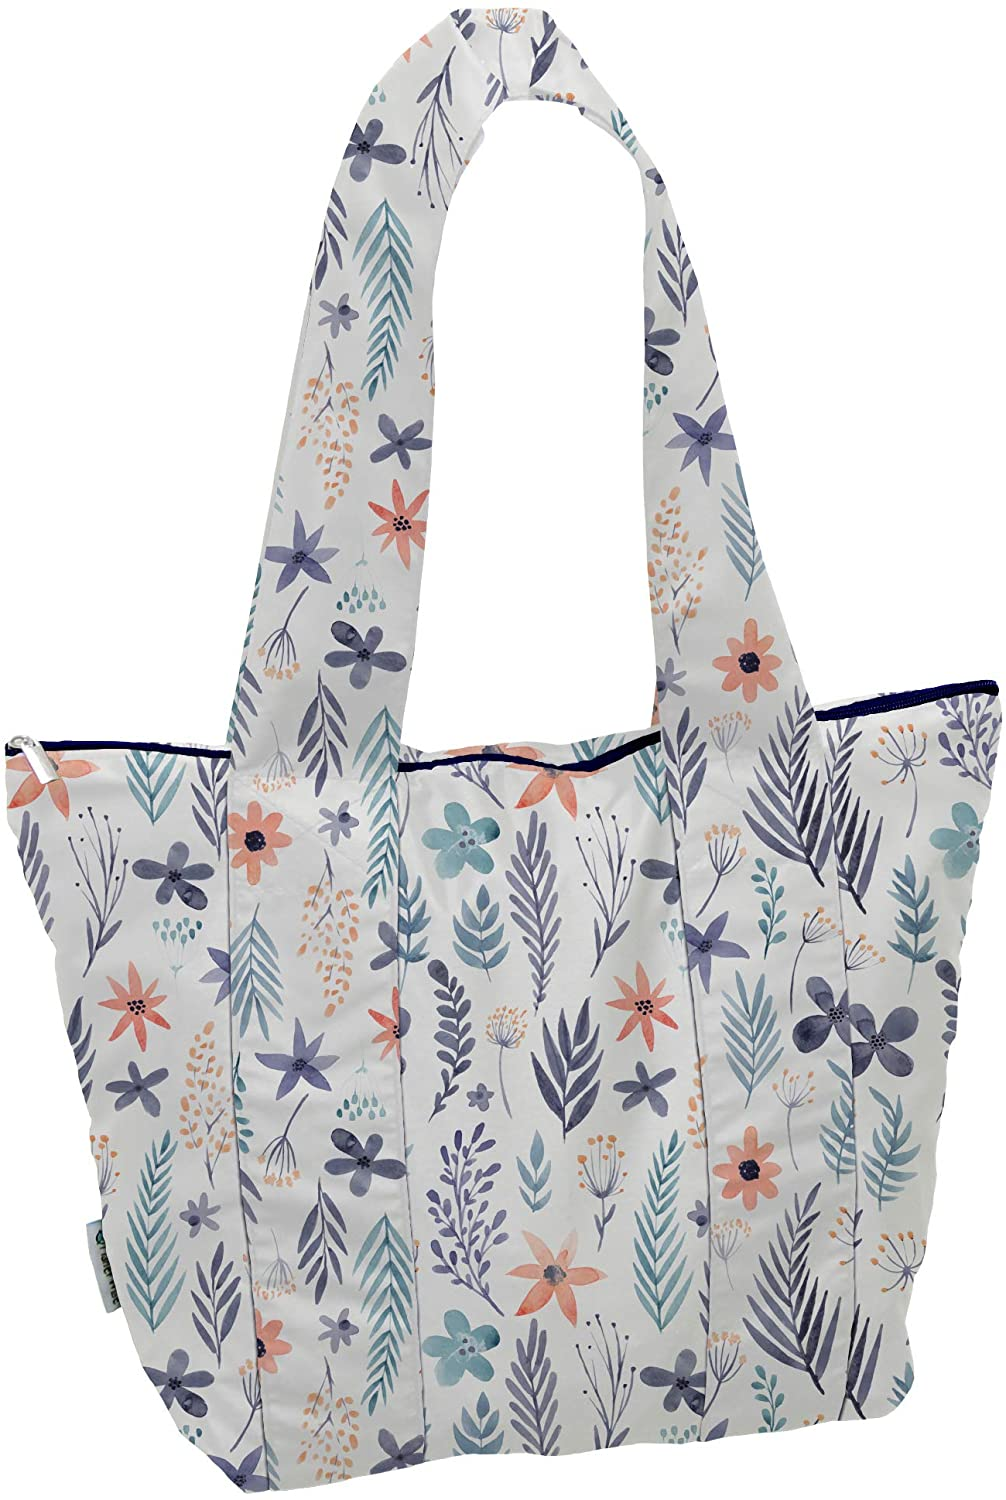 Planet Wise Travel Oh Lily All Day Tote Shoulder Bag